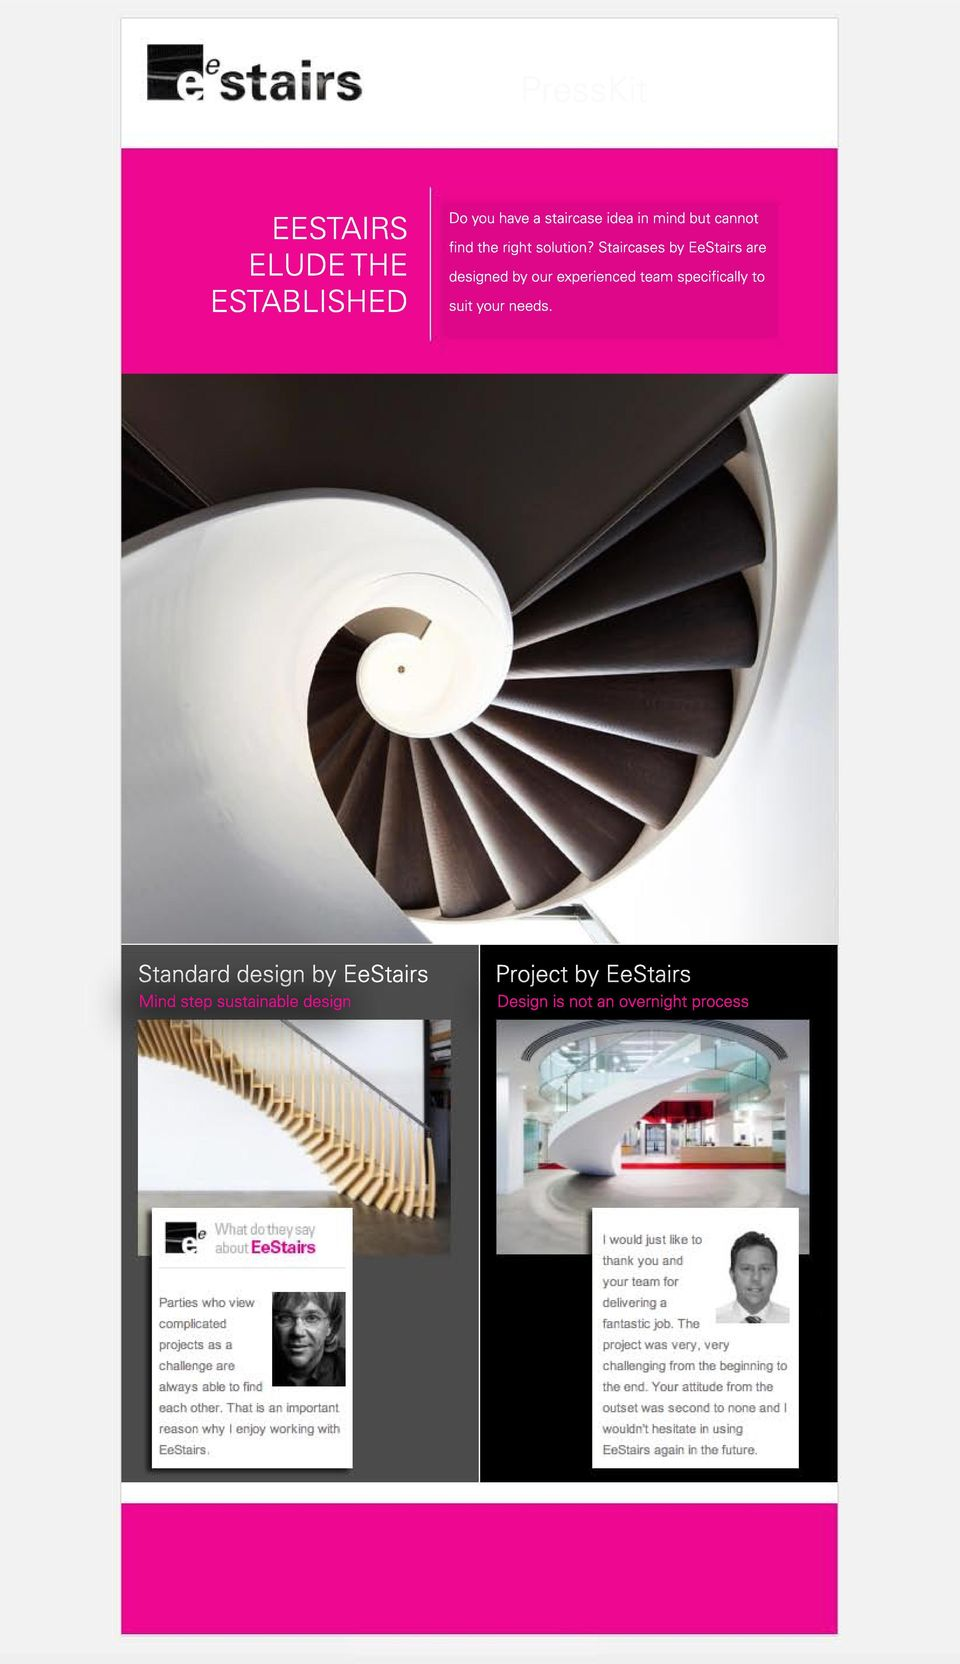 Staircases by EeStairs are designed by our experienced team specifically to